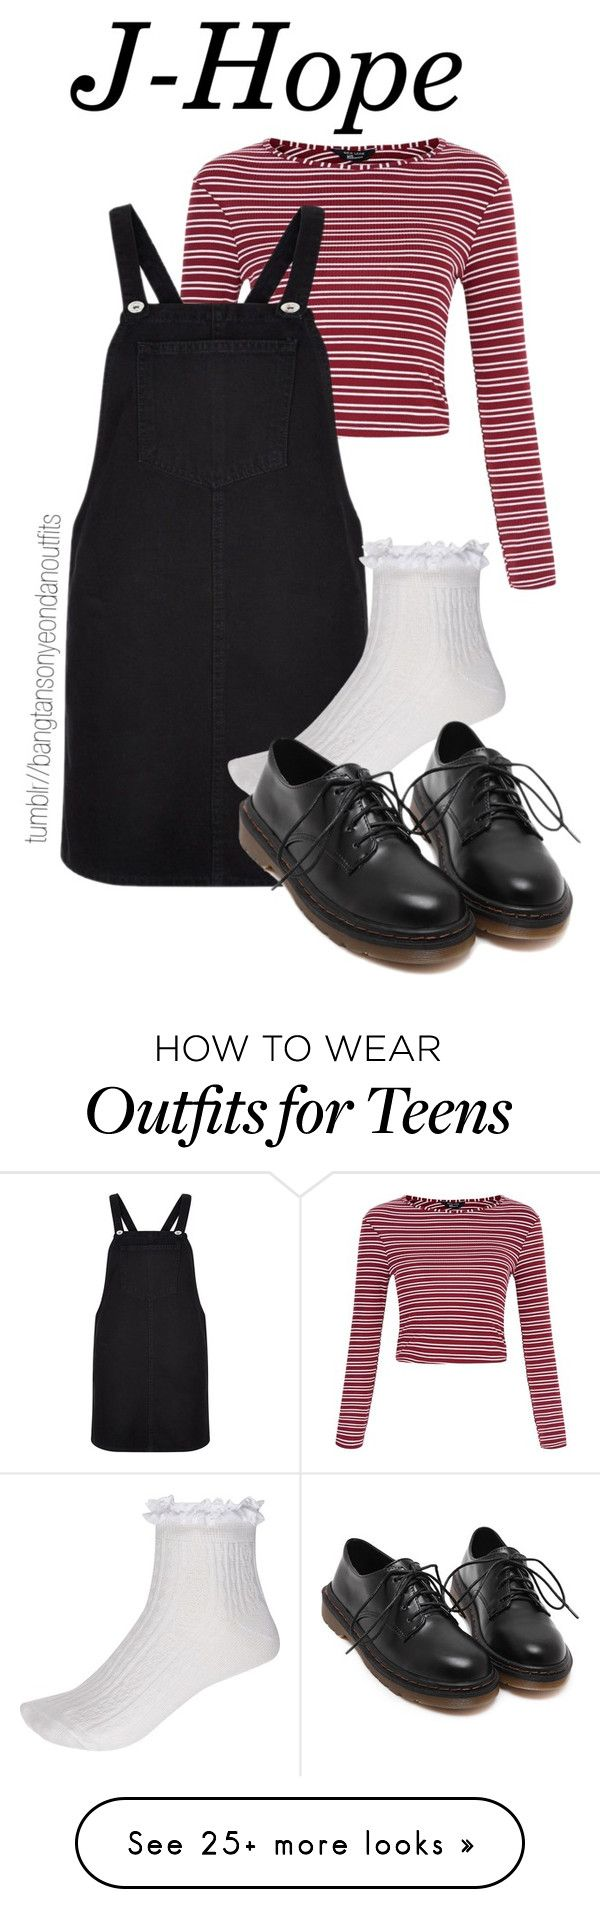 Quot Jhope Birthday 4 Quot By Bangtanoutfits On Polyvore Featuring